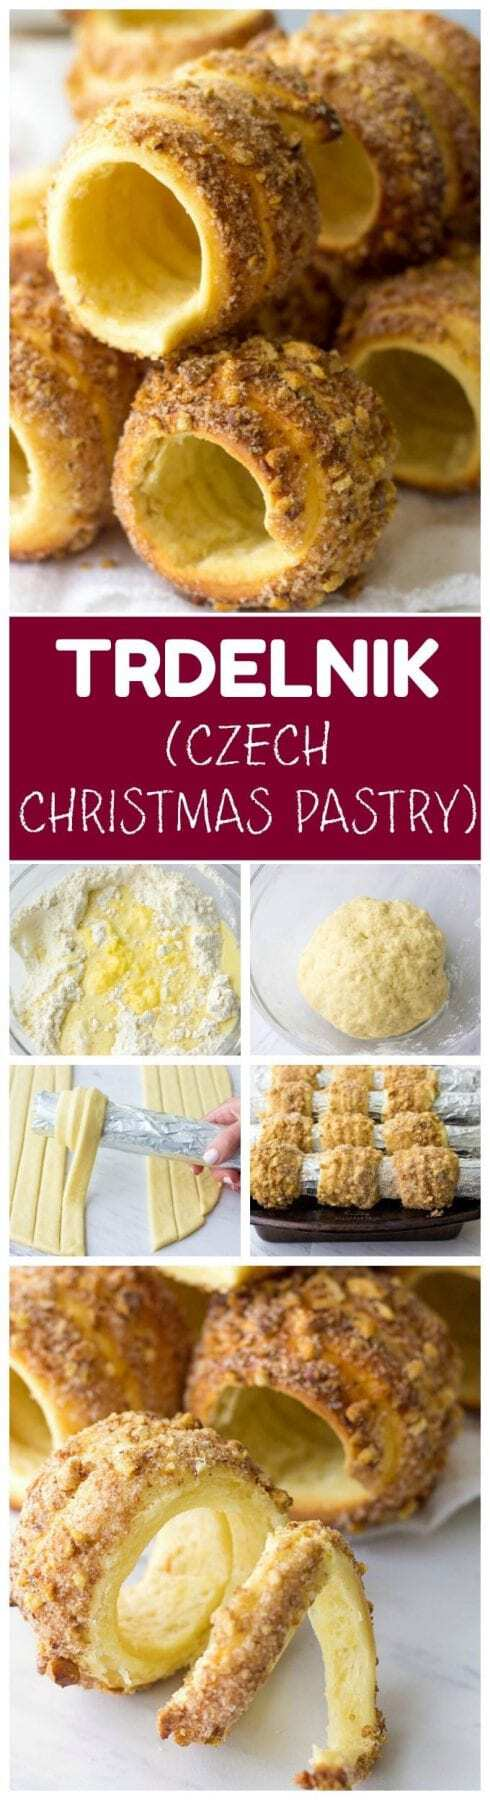 Are you looking for creative Christmas desserts? Surprise your family and friends with traditional Czech recipe - Homemade Trdelnik.